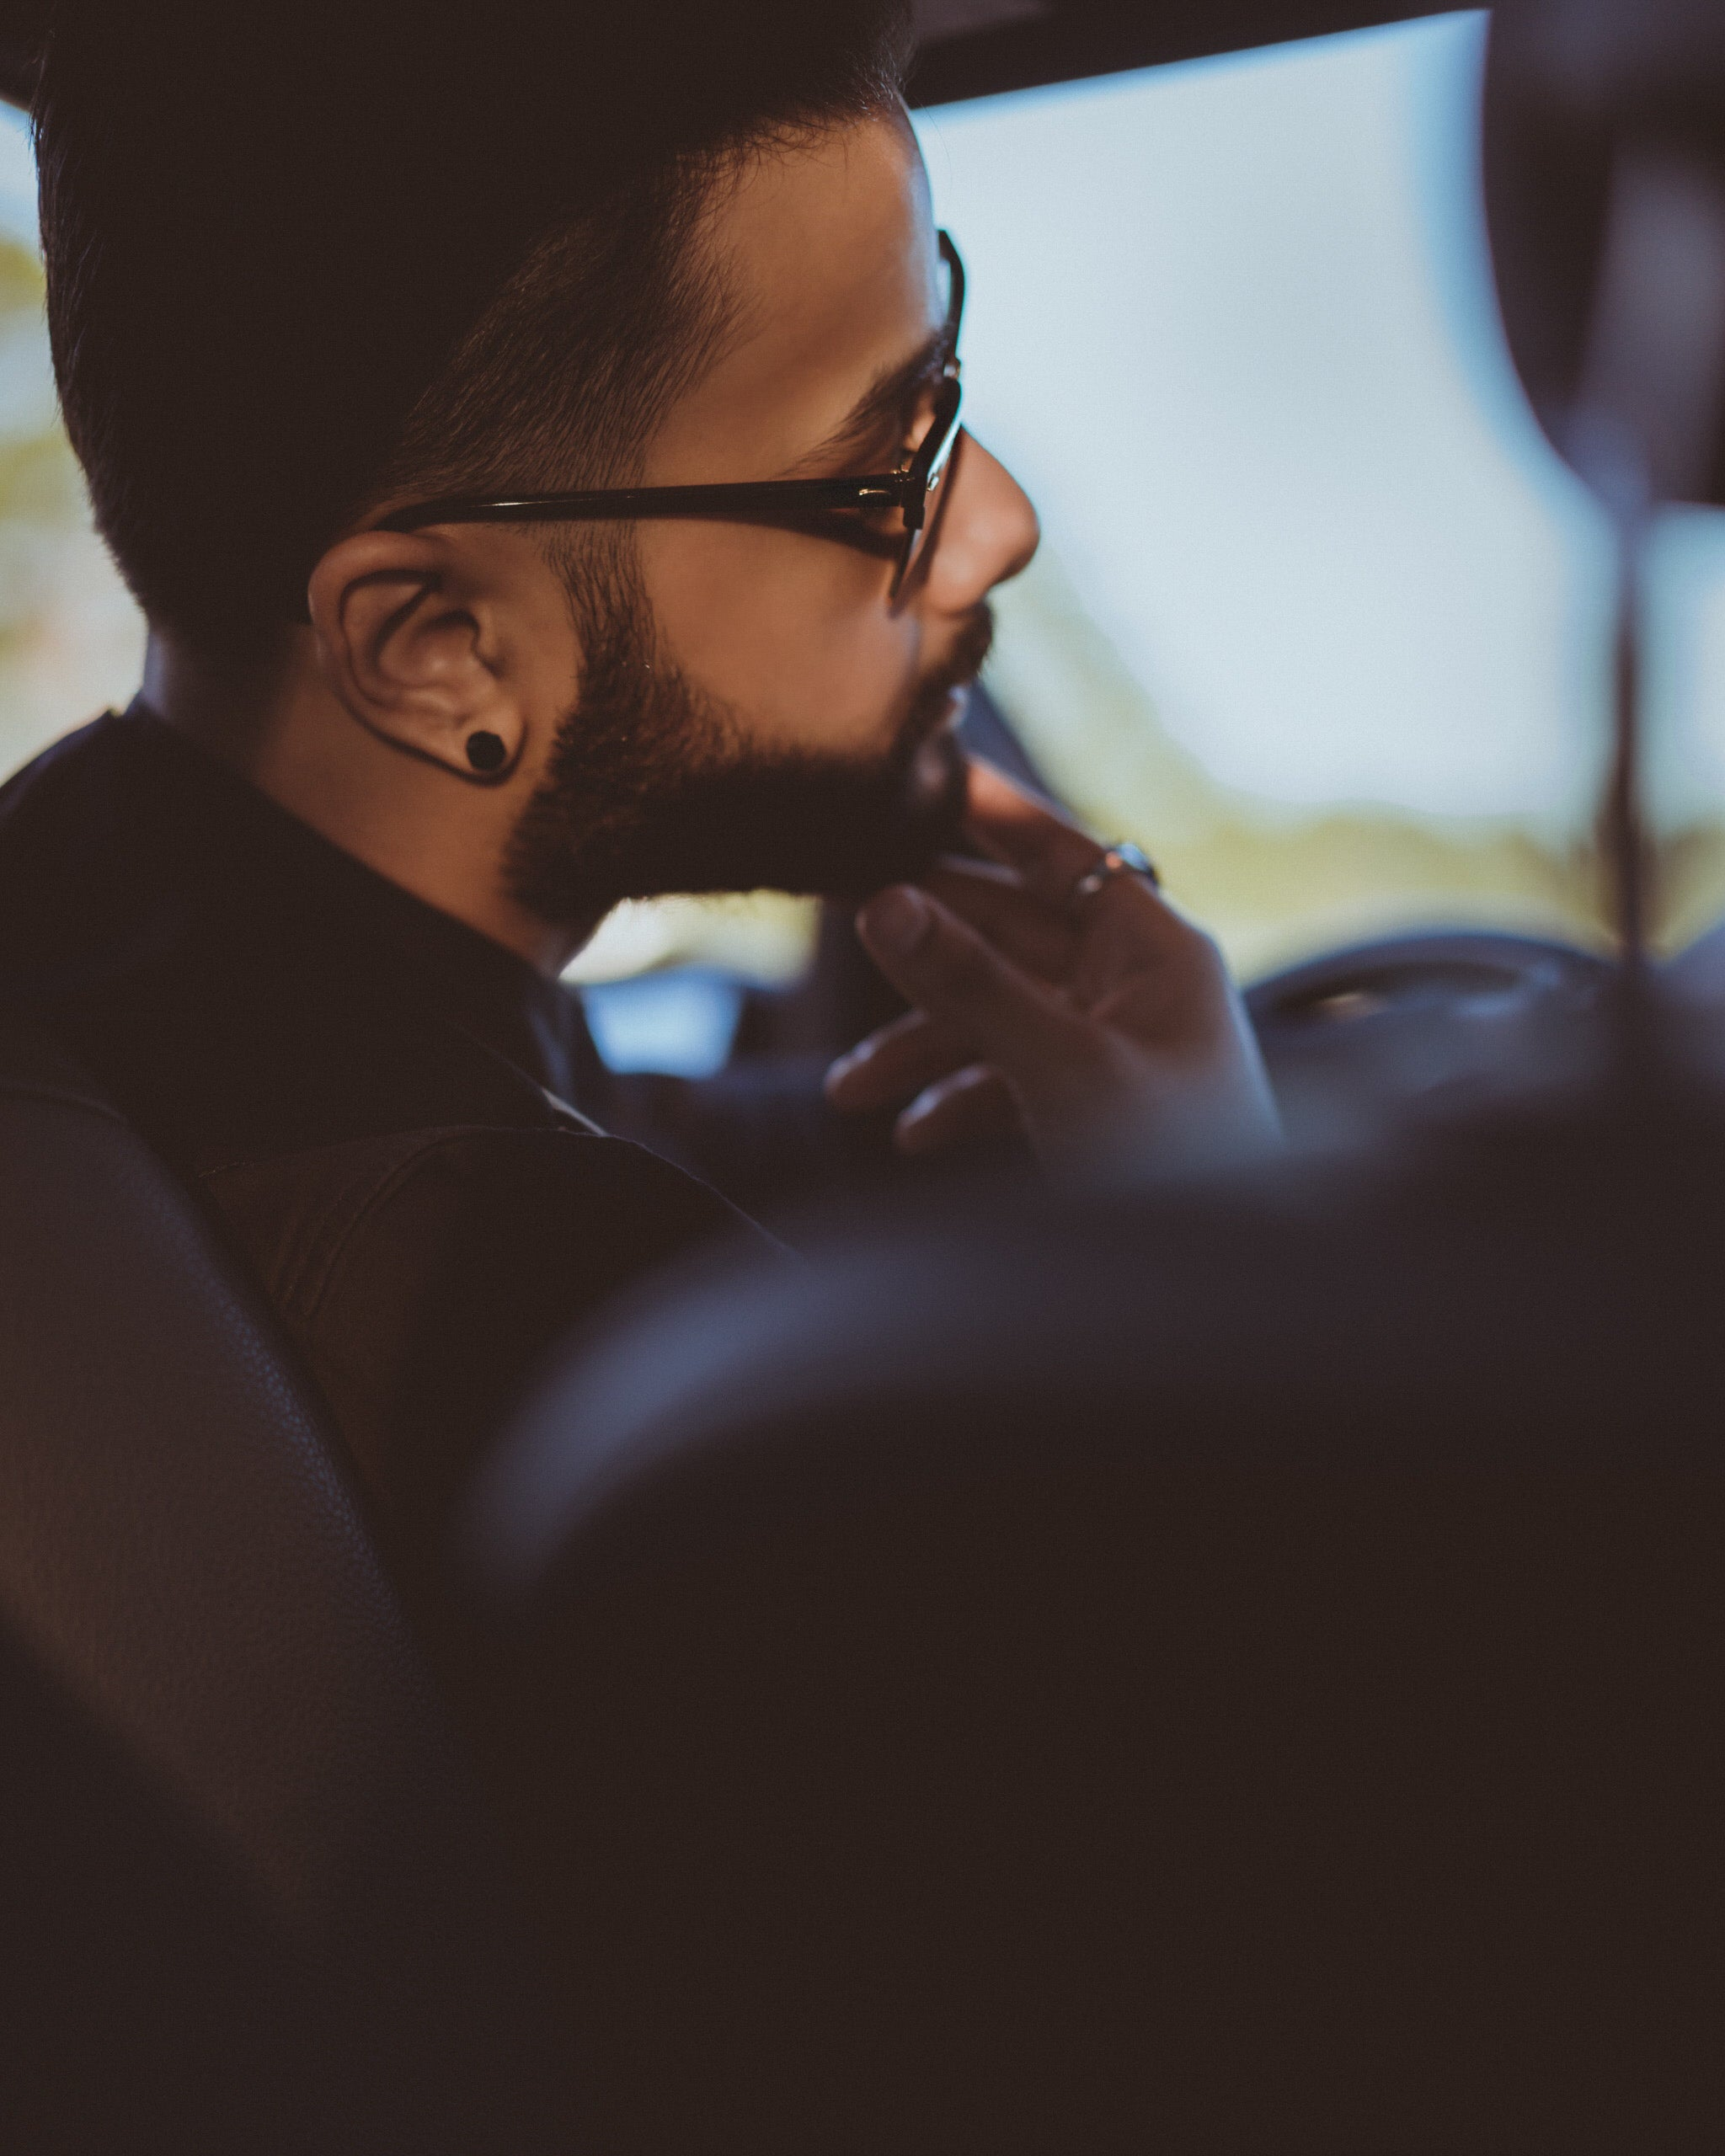 man wearing black sunglasses sitting inside a car